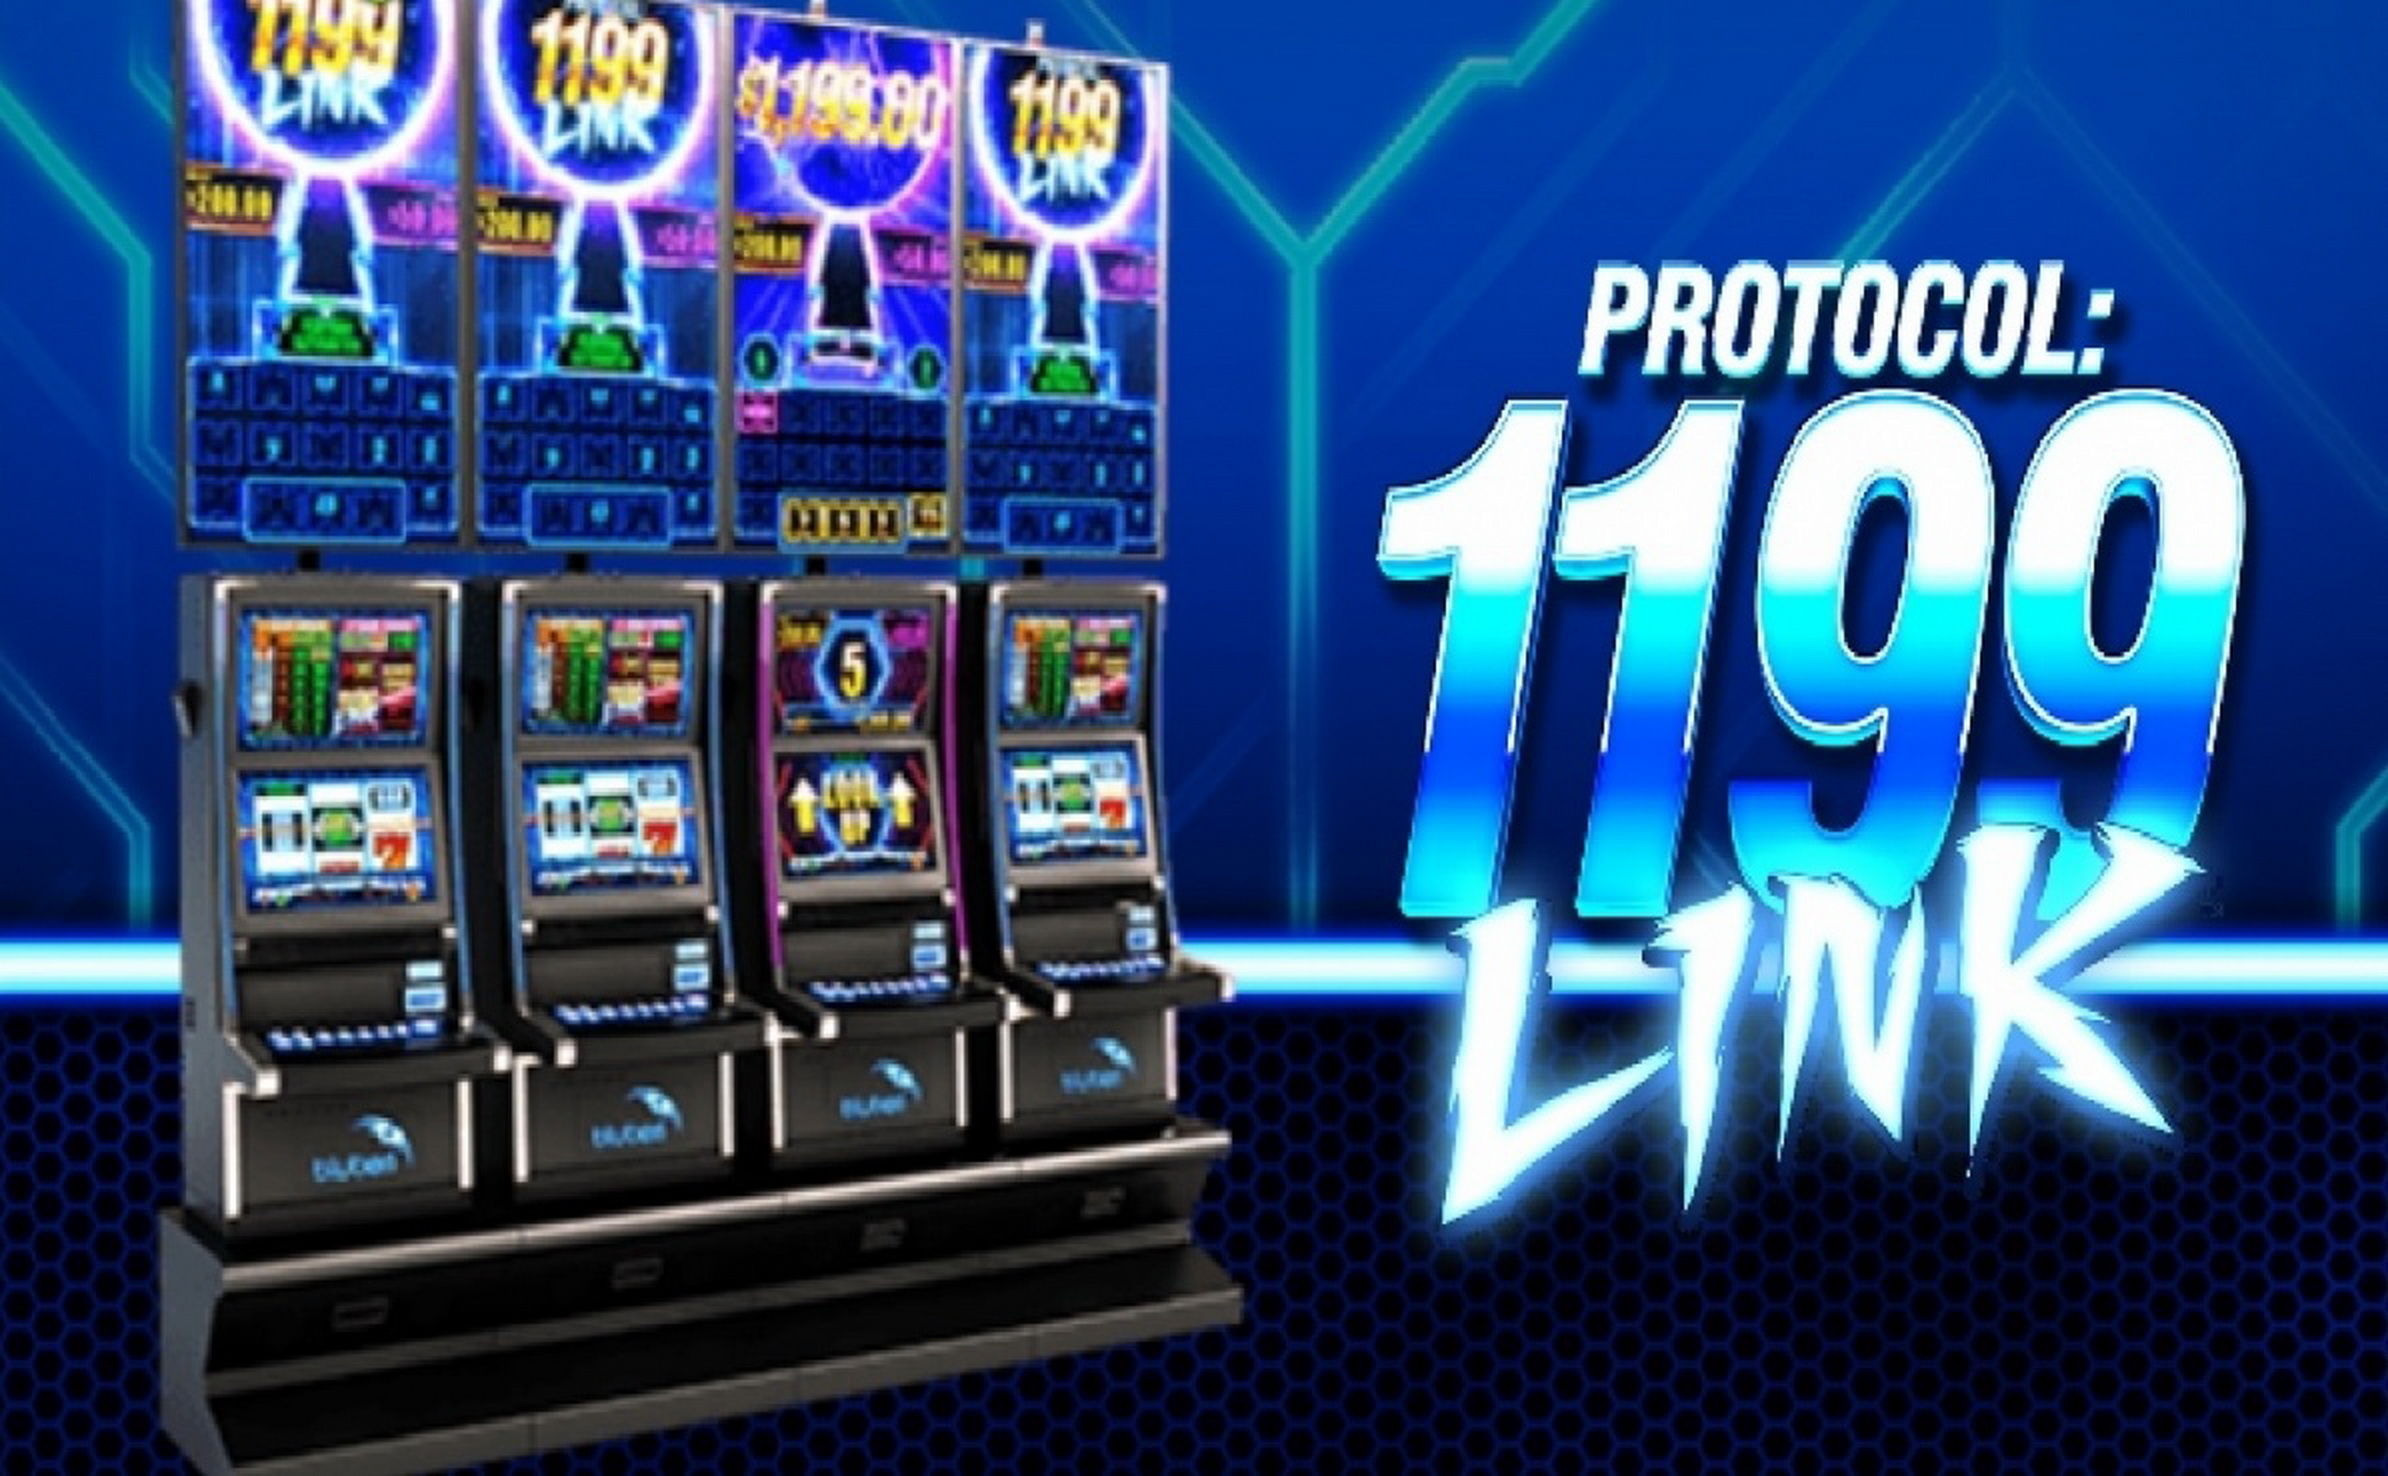 The Protocol 1199 Link Online Slot Demo Game by bluberi